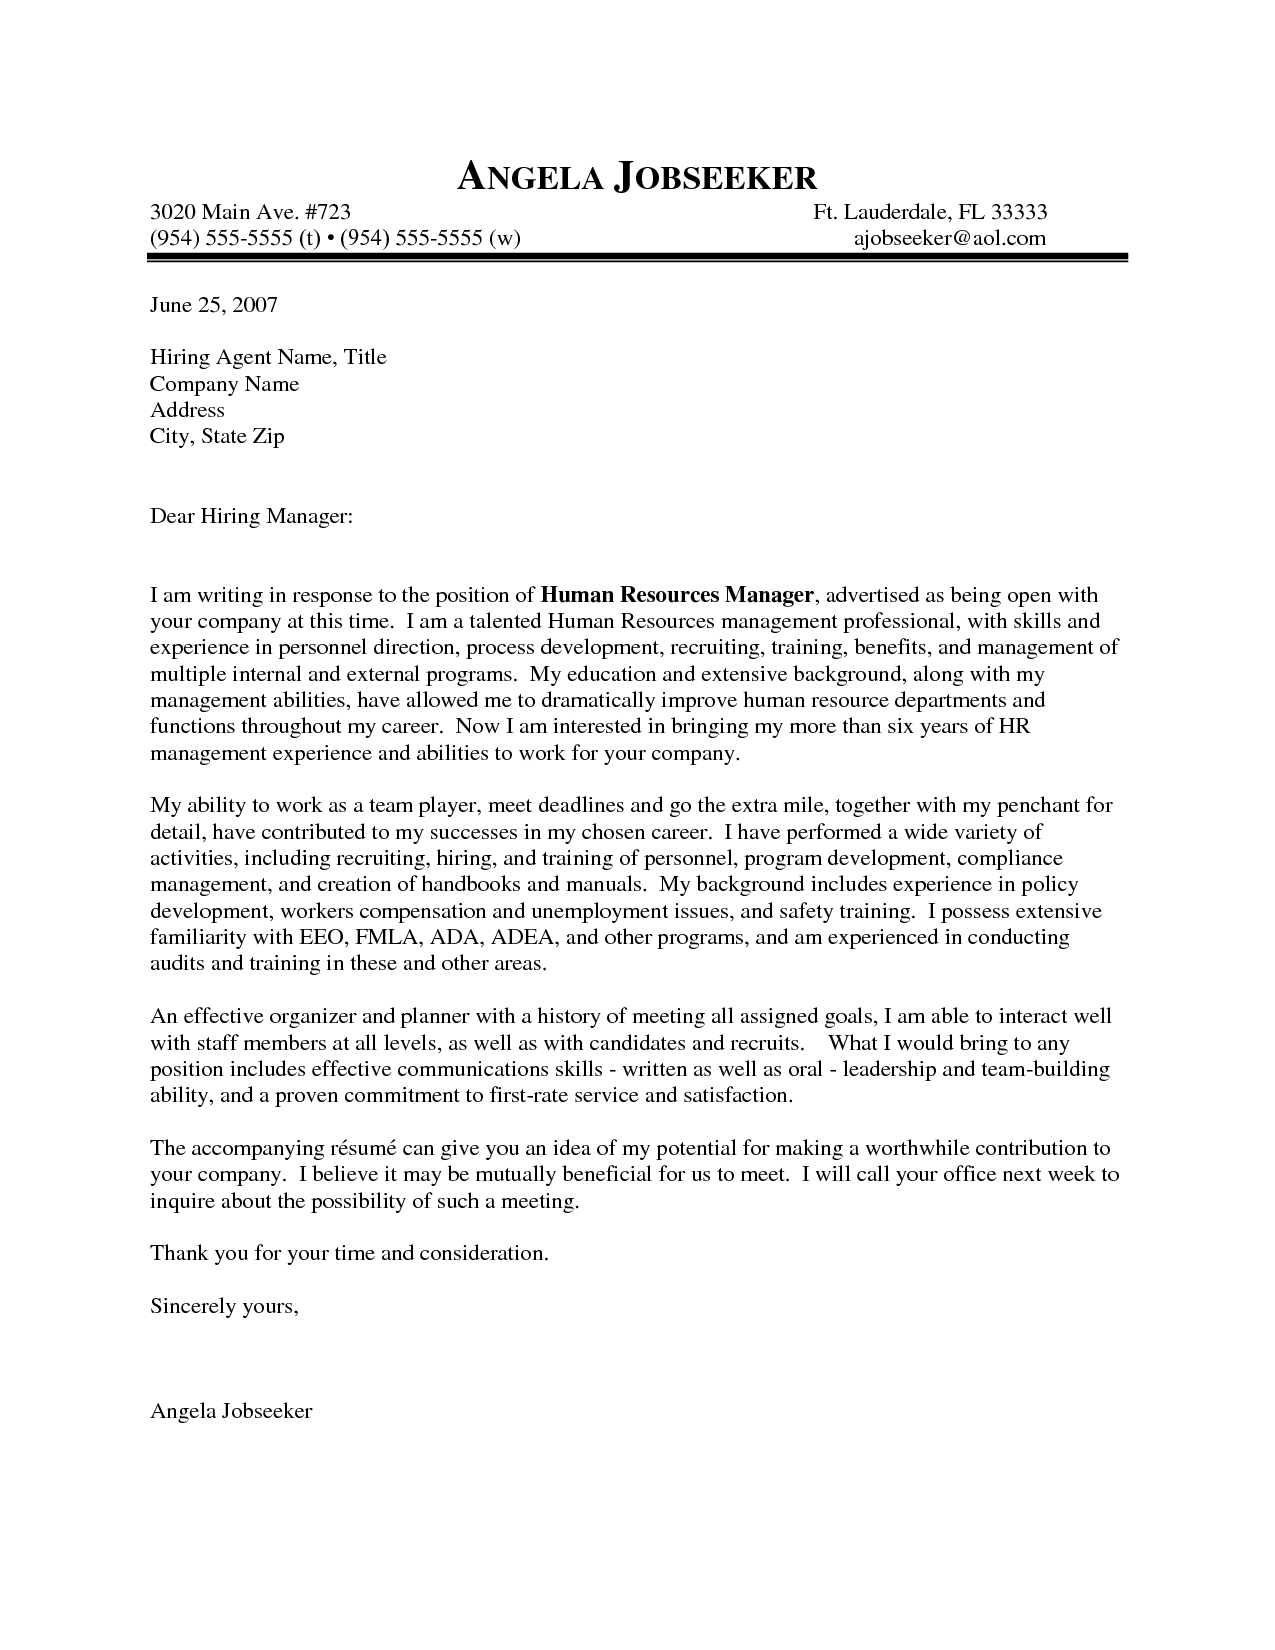 Outstanding cover letter examples hr manager cover letter example outstanding cover letter examples hr manager cover letter example spiritdancerdesigns Images